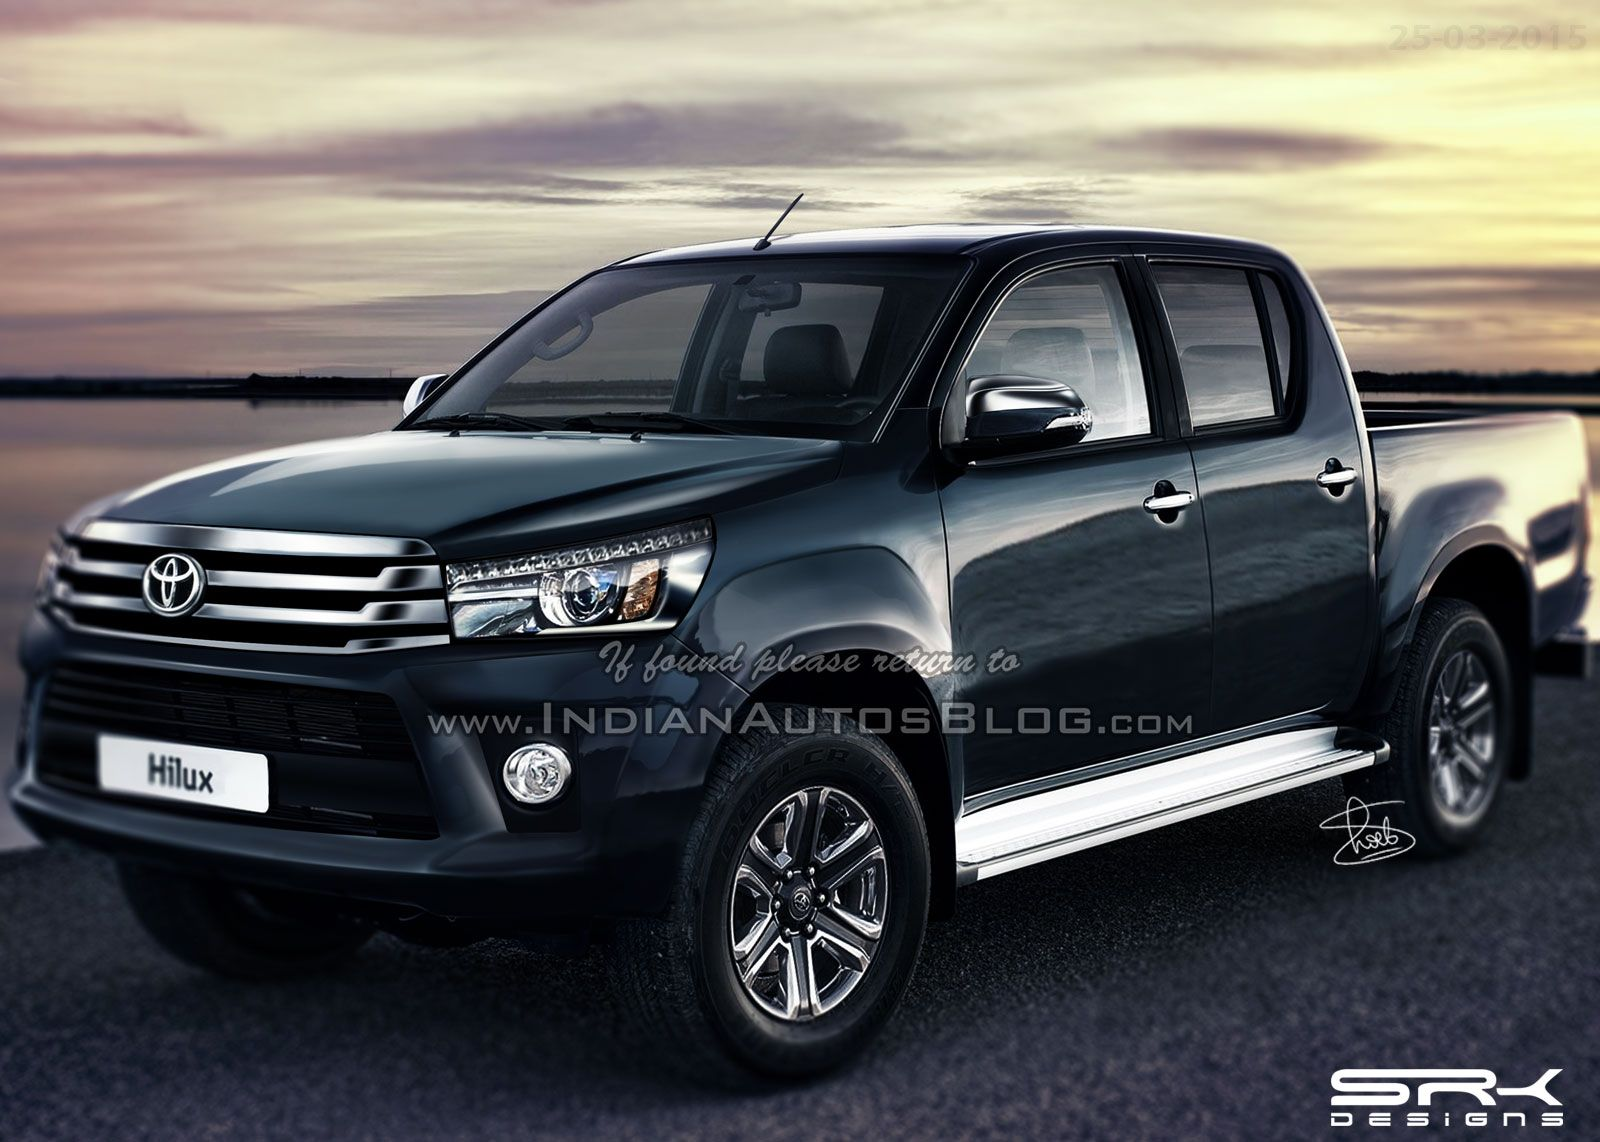 pin by faza bahakim on cars insurancer toyota hilux toyota toyota 4x4. Black Bedroom Furniture Sets. Home Design Ideas